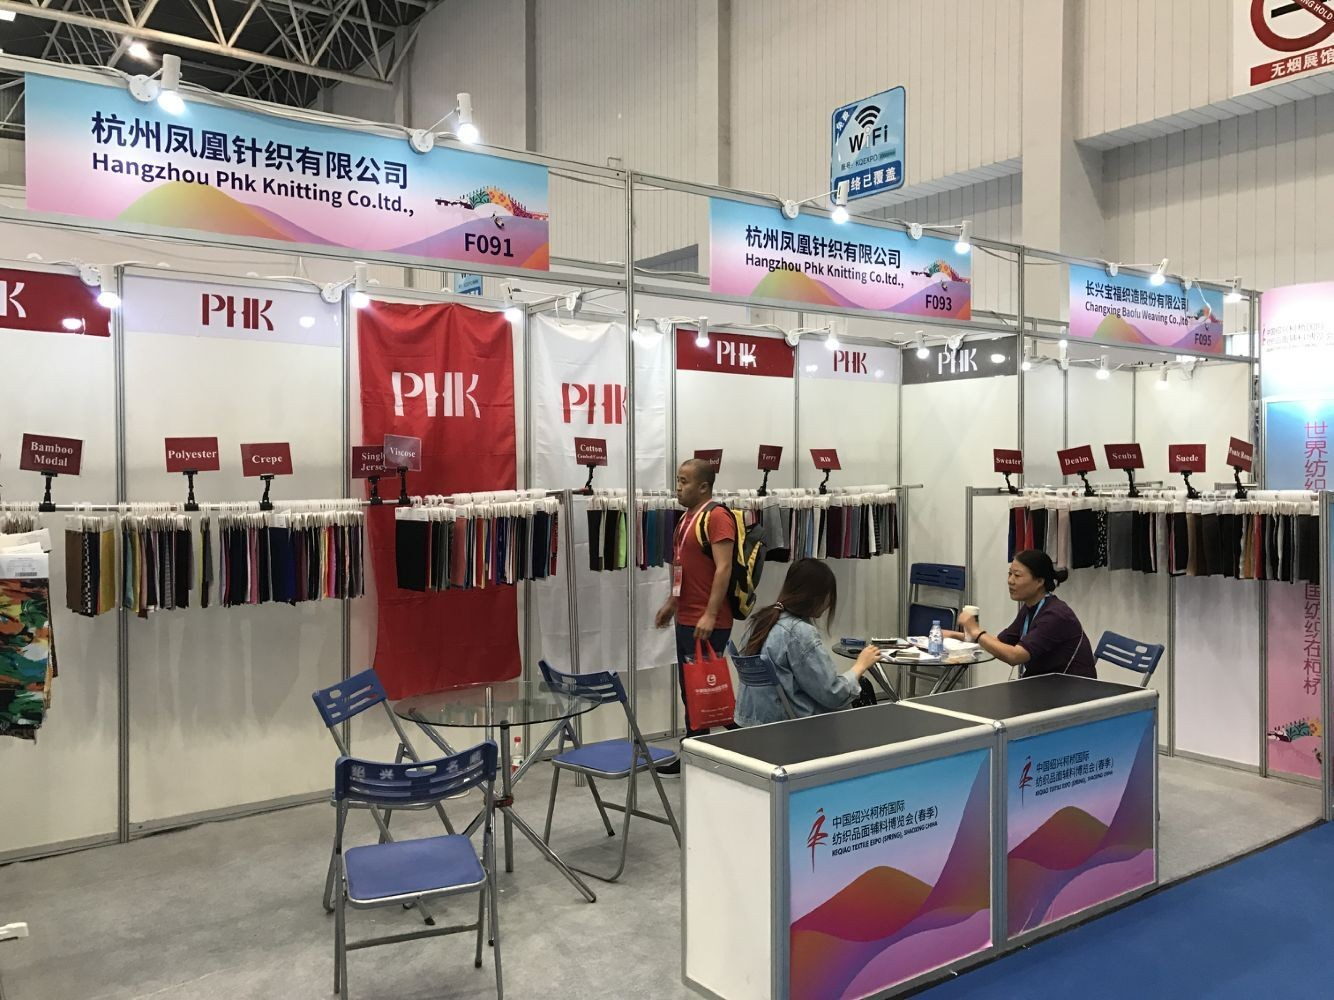 KEQIAO EXPO 2018.09.28-30, BOOTH No.E032